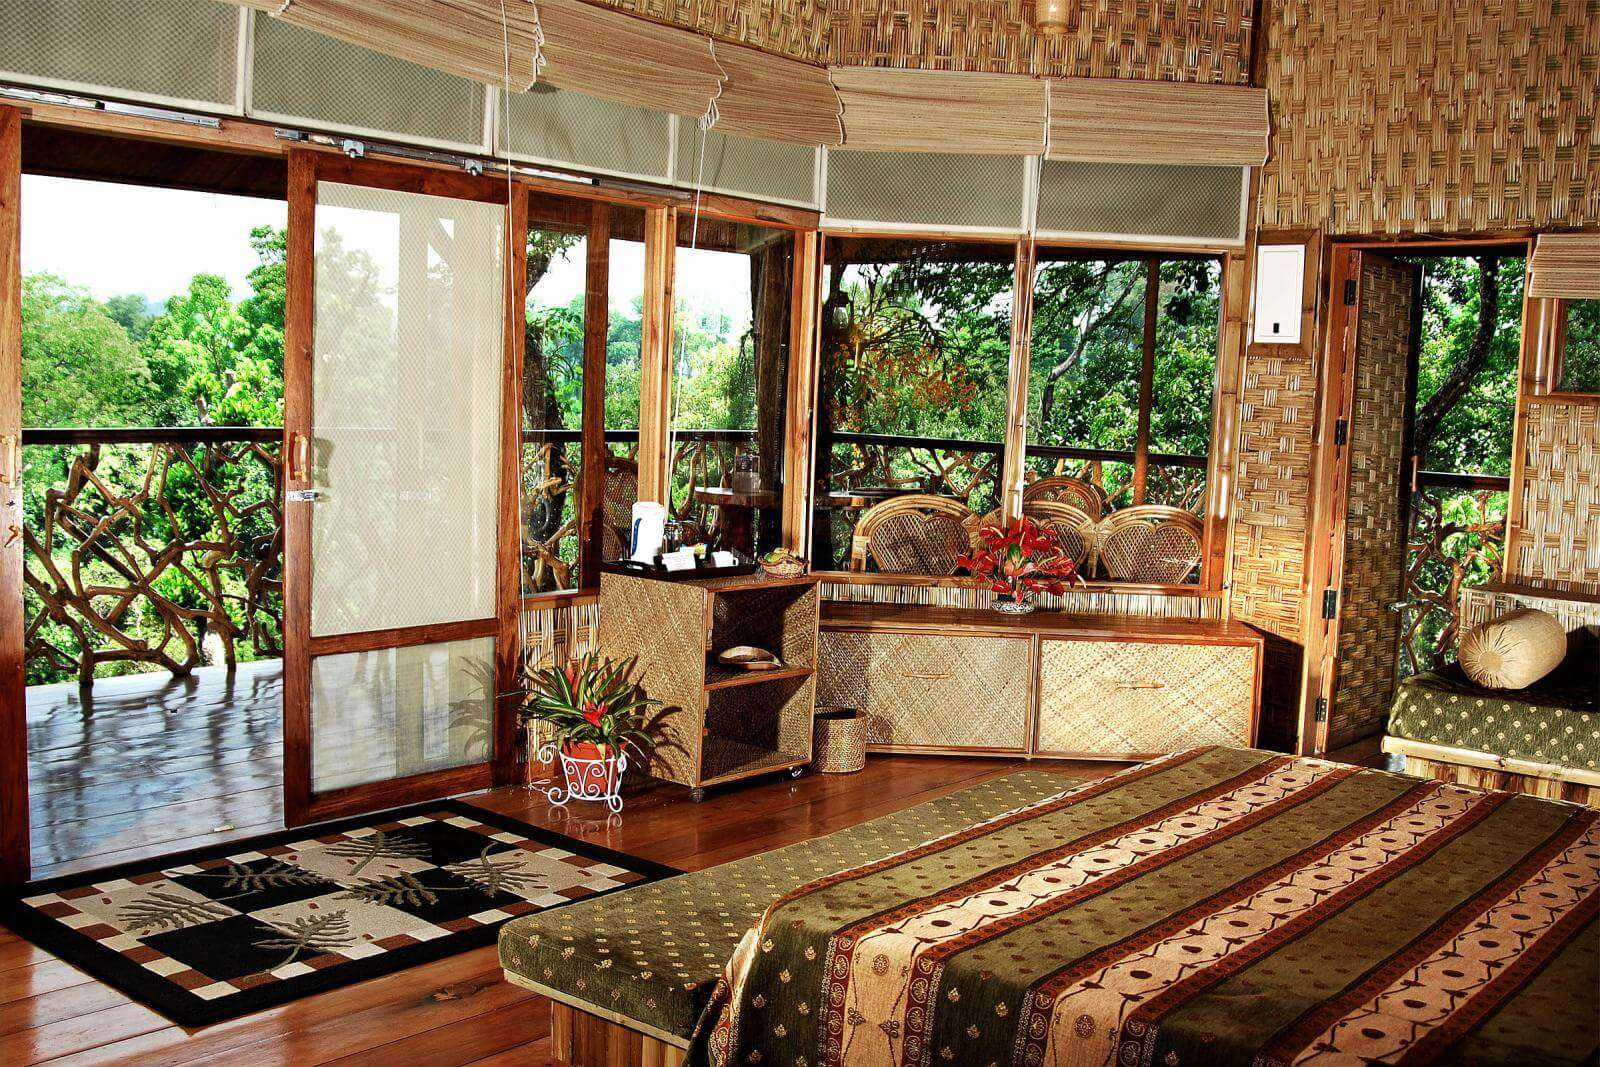 a resort room with glass window